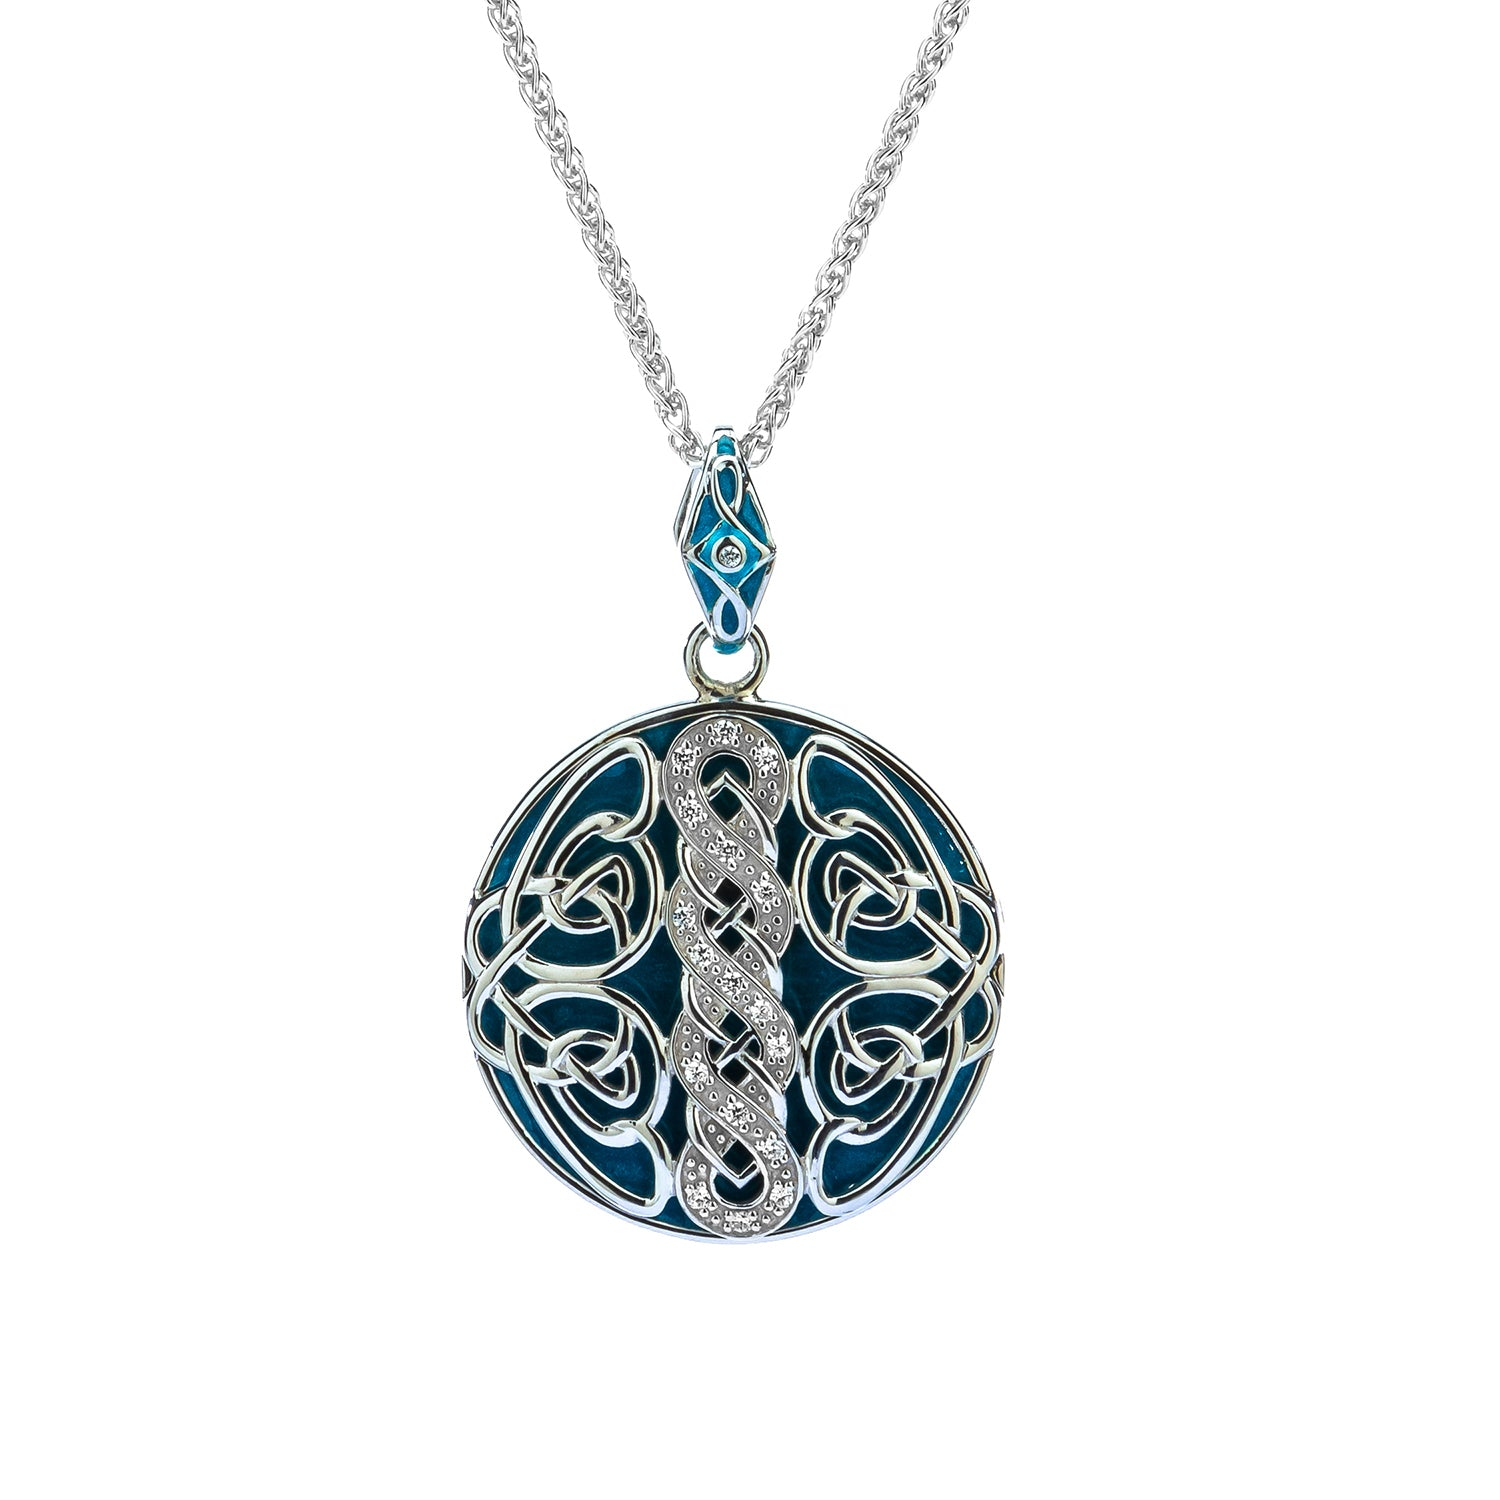 Pendant Sky Blue Enamel Black & White CZ Norse Knotwork Large Reversible Pendant from welch and company jewelers near syracuse ny